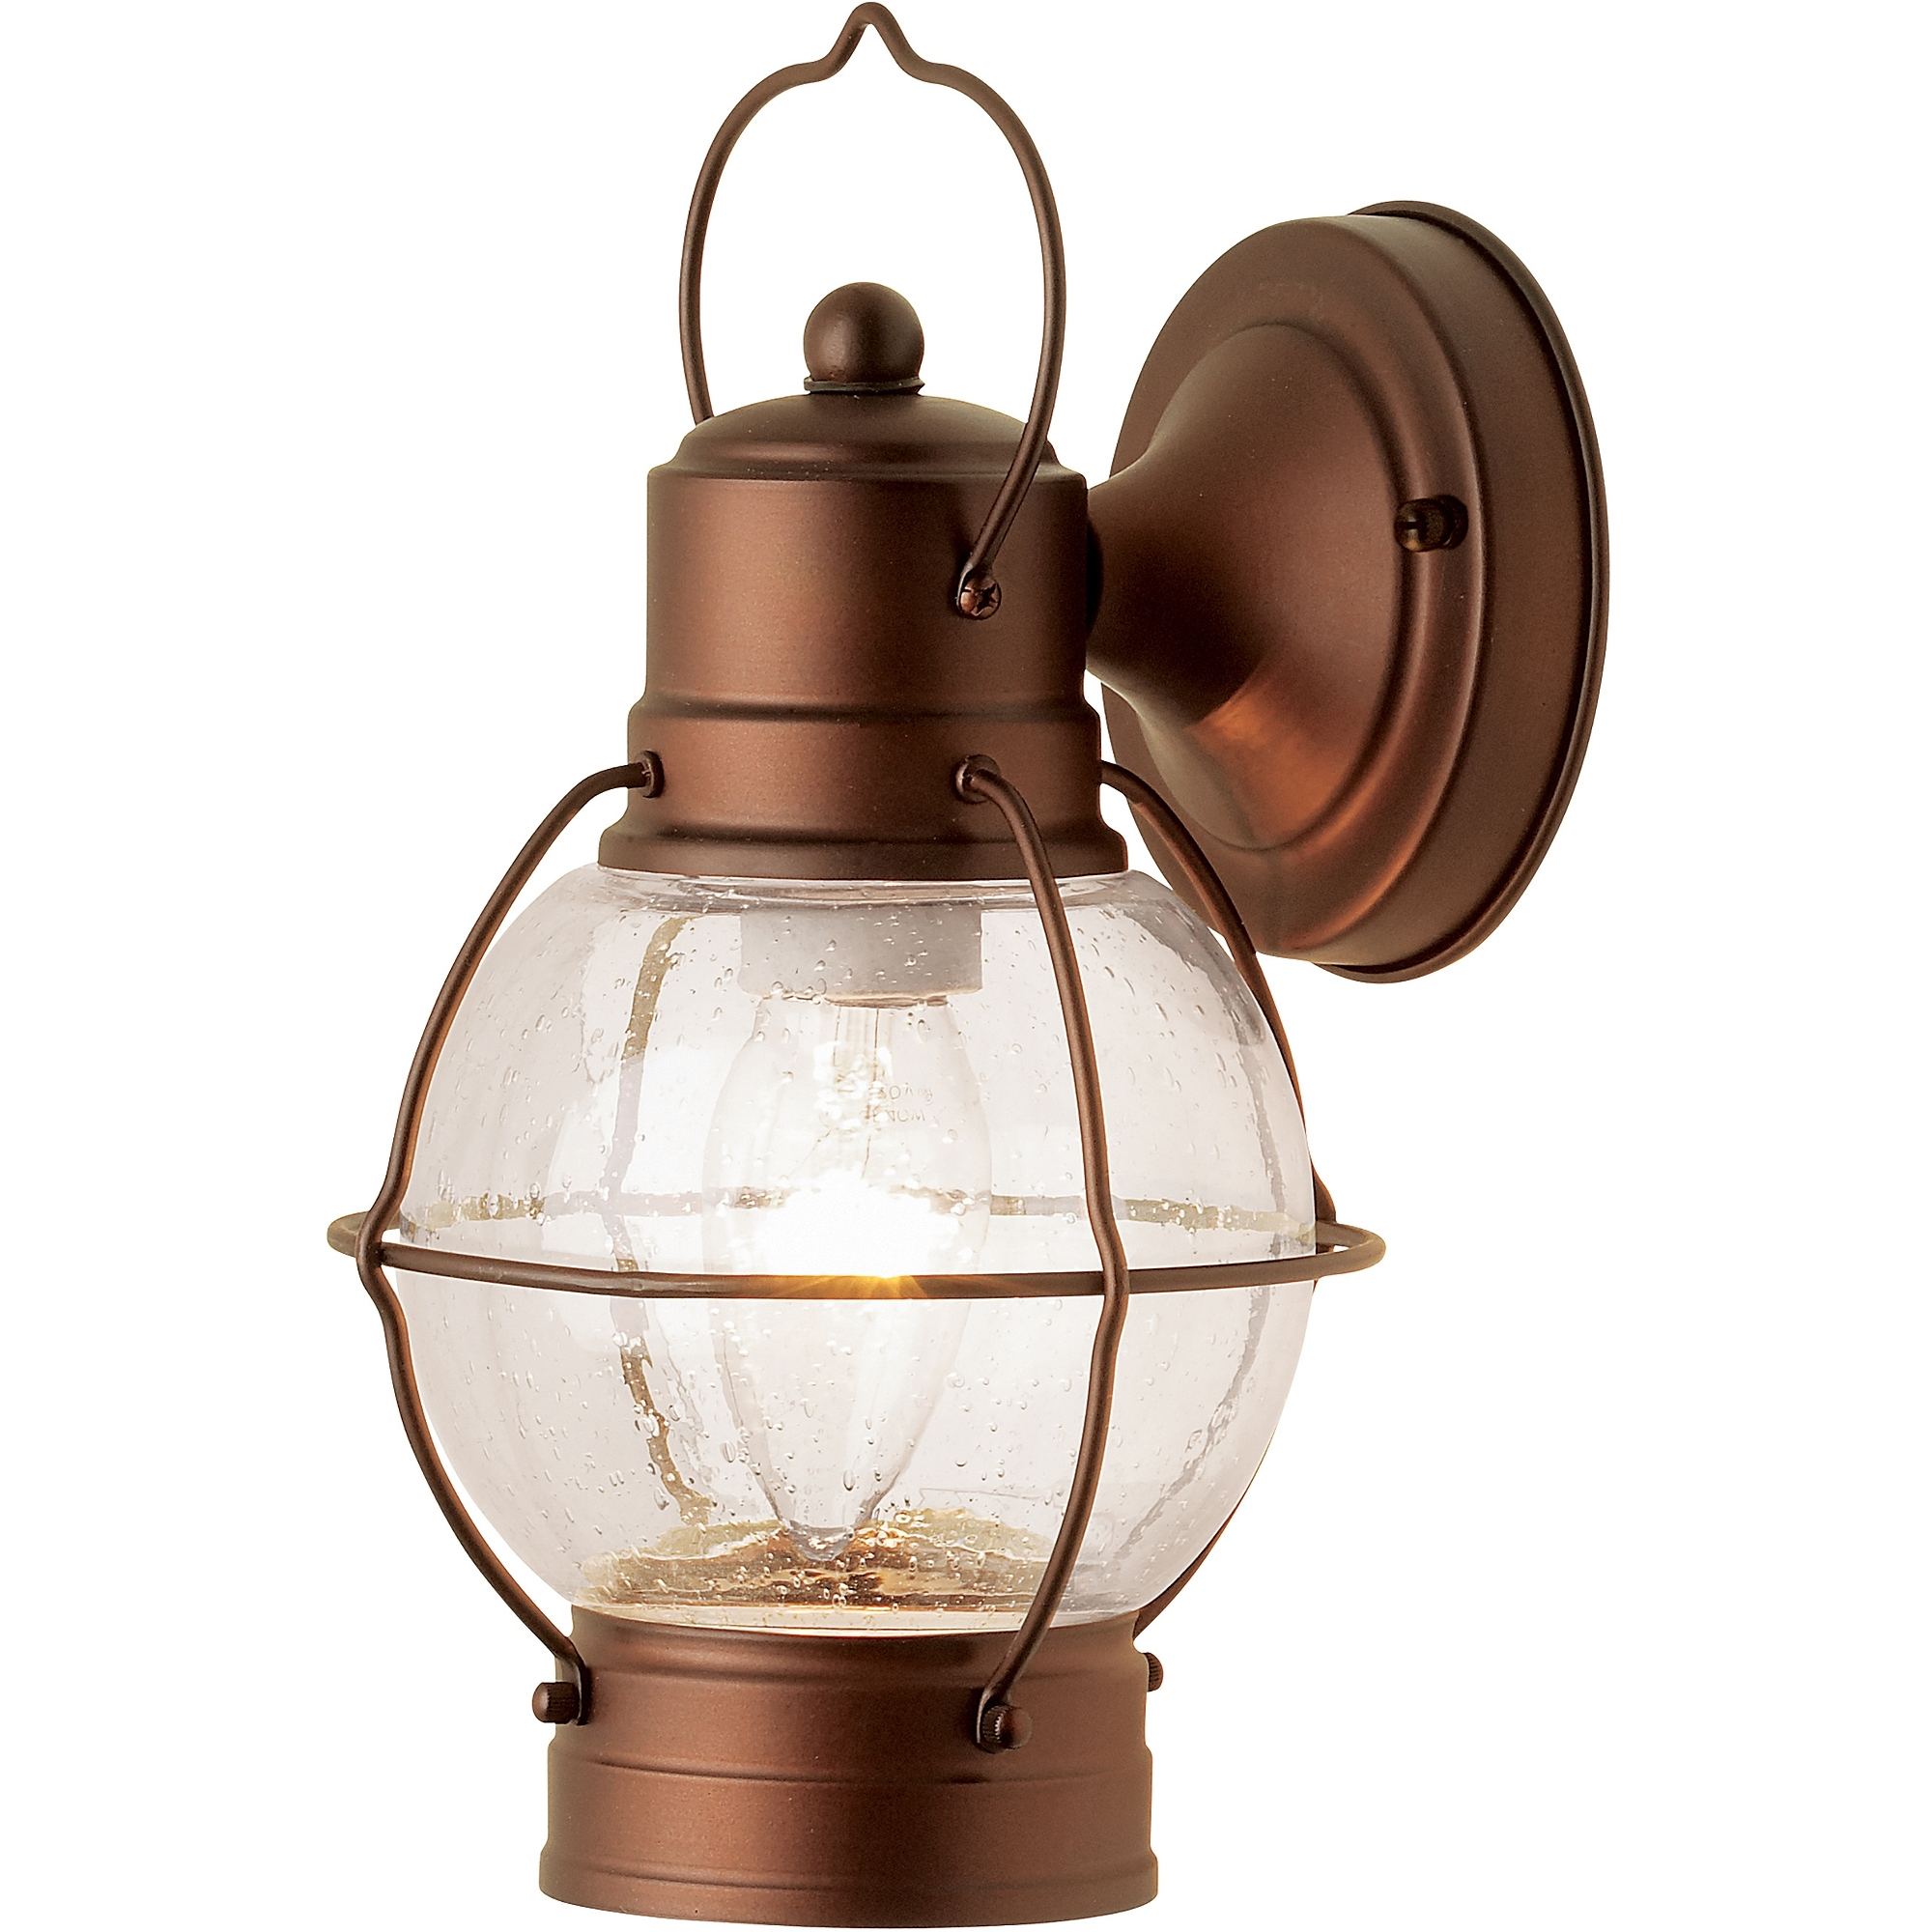 2018 Hampton Rustico Lantern, Outdoor Lighting, Aged Bronze – Walmart With Regard To Outdoor Lighting Onion Lanterns (View 14 of 20)